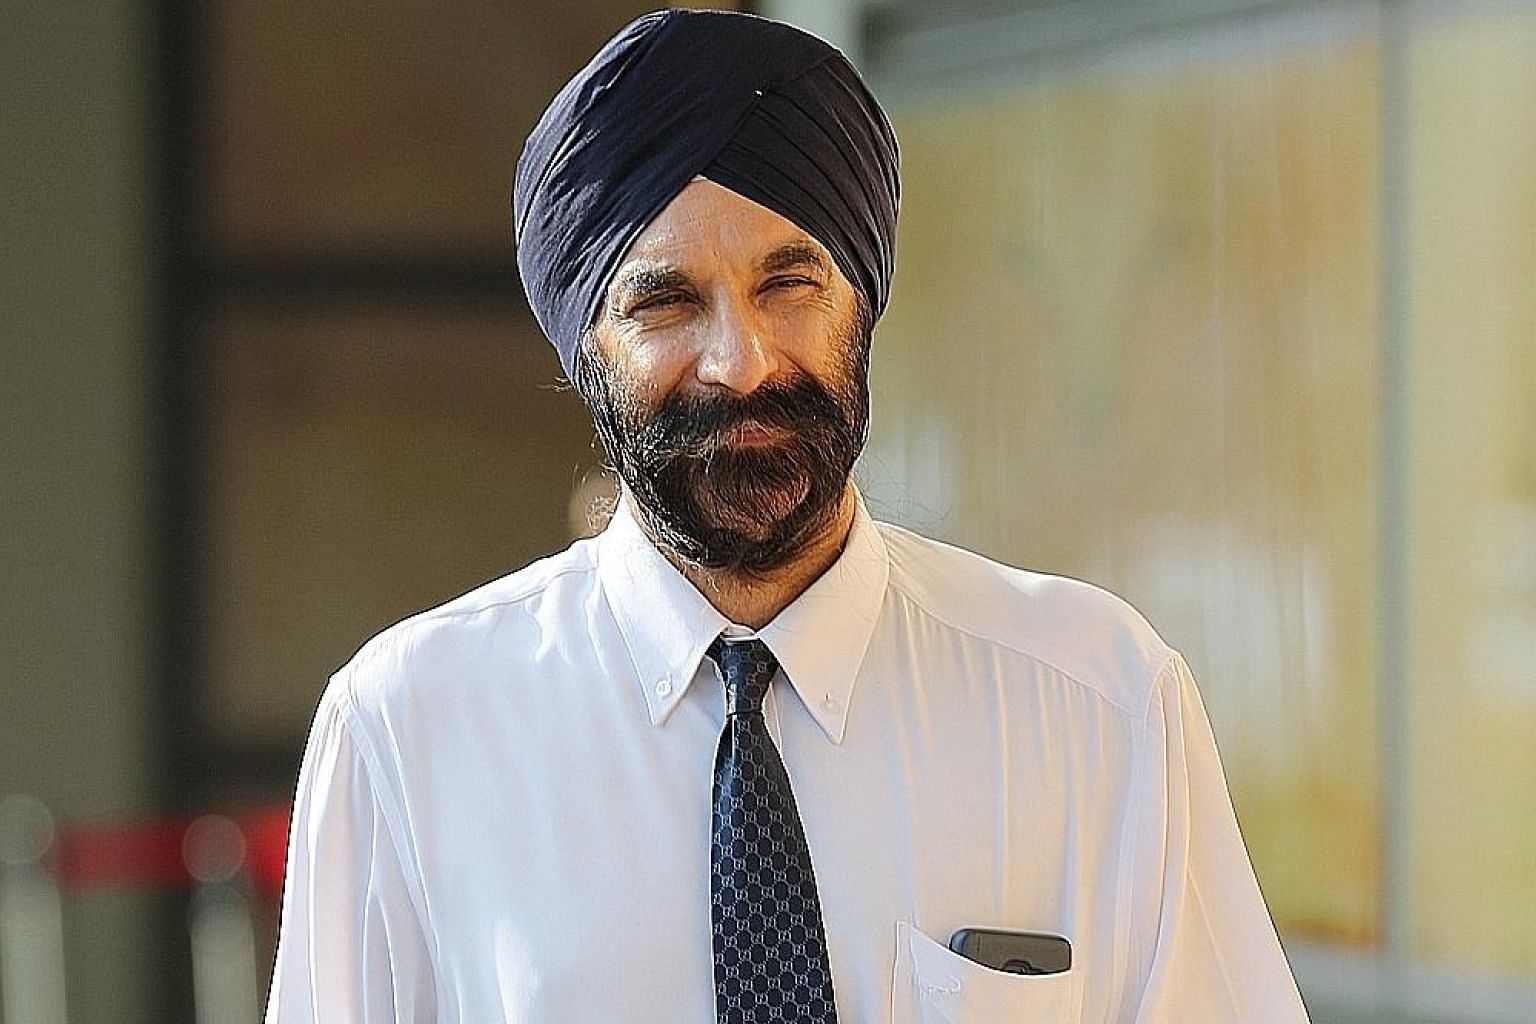 Senior Counsel Davinder Singh, 61, will be joined by Drew & Napier directors Jaikanth Shankar and Pardeep Singh Khosa. The new firm's name has not been revealed.